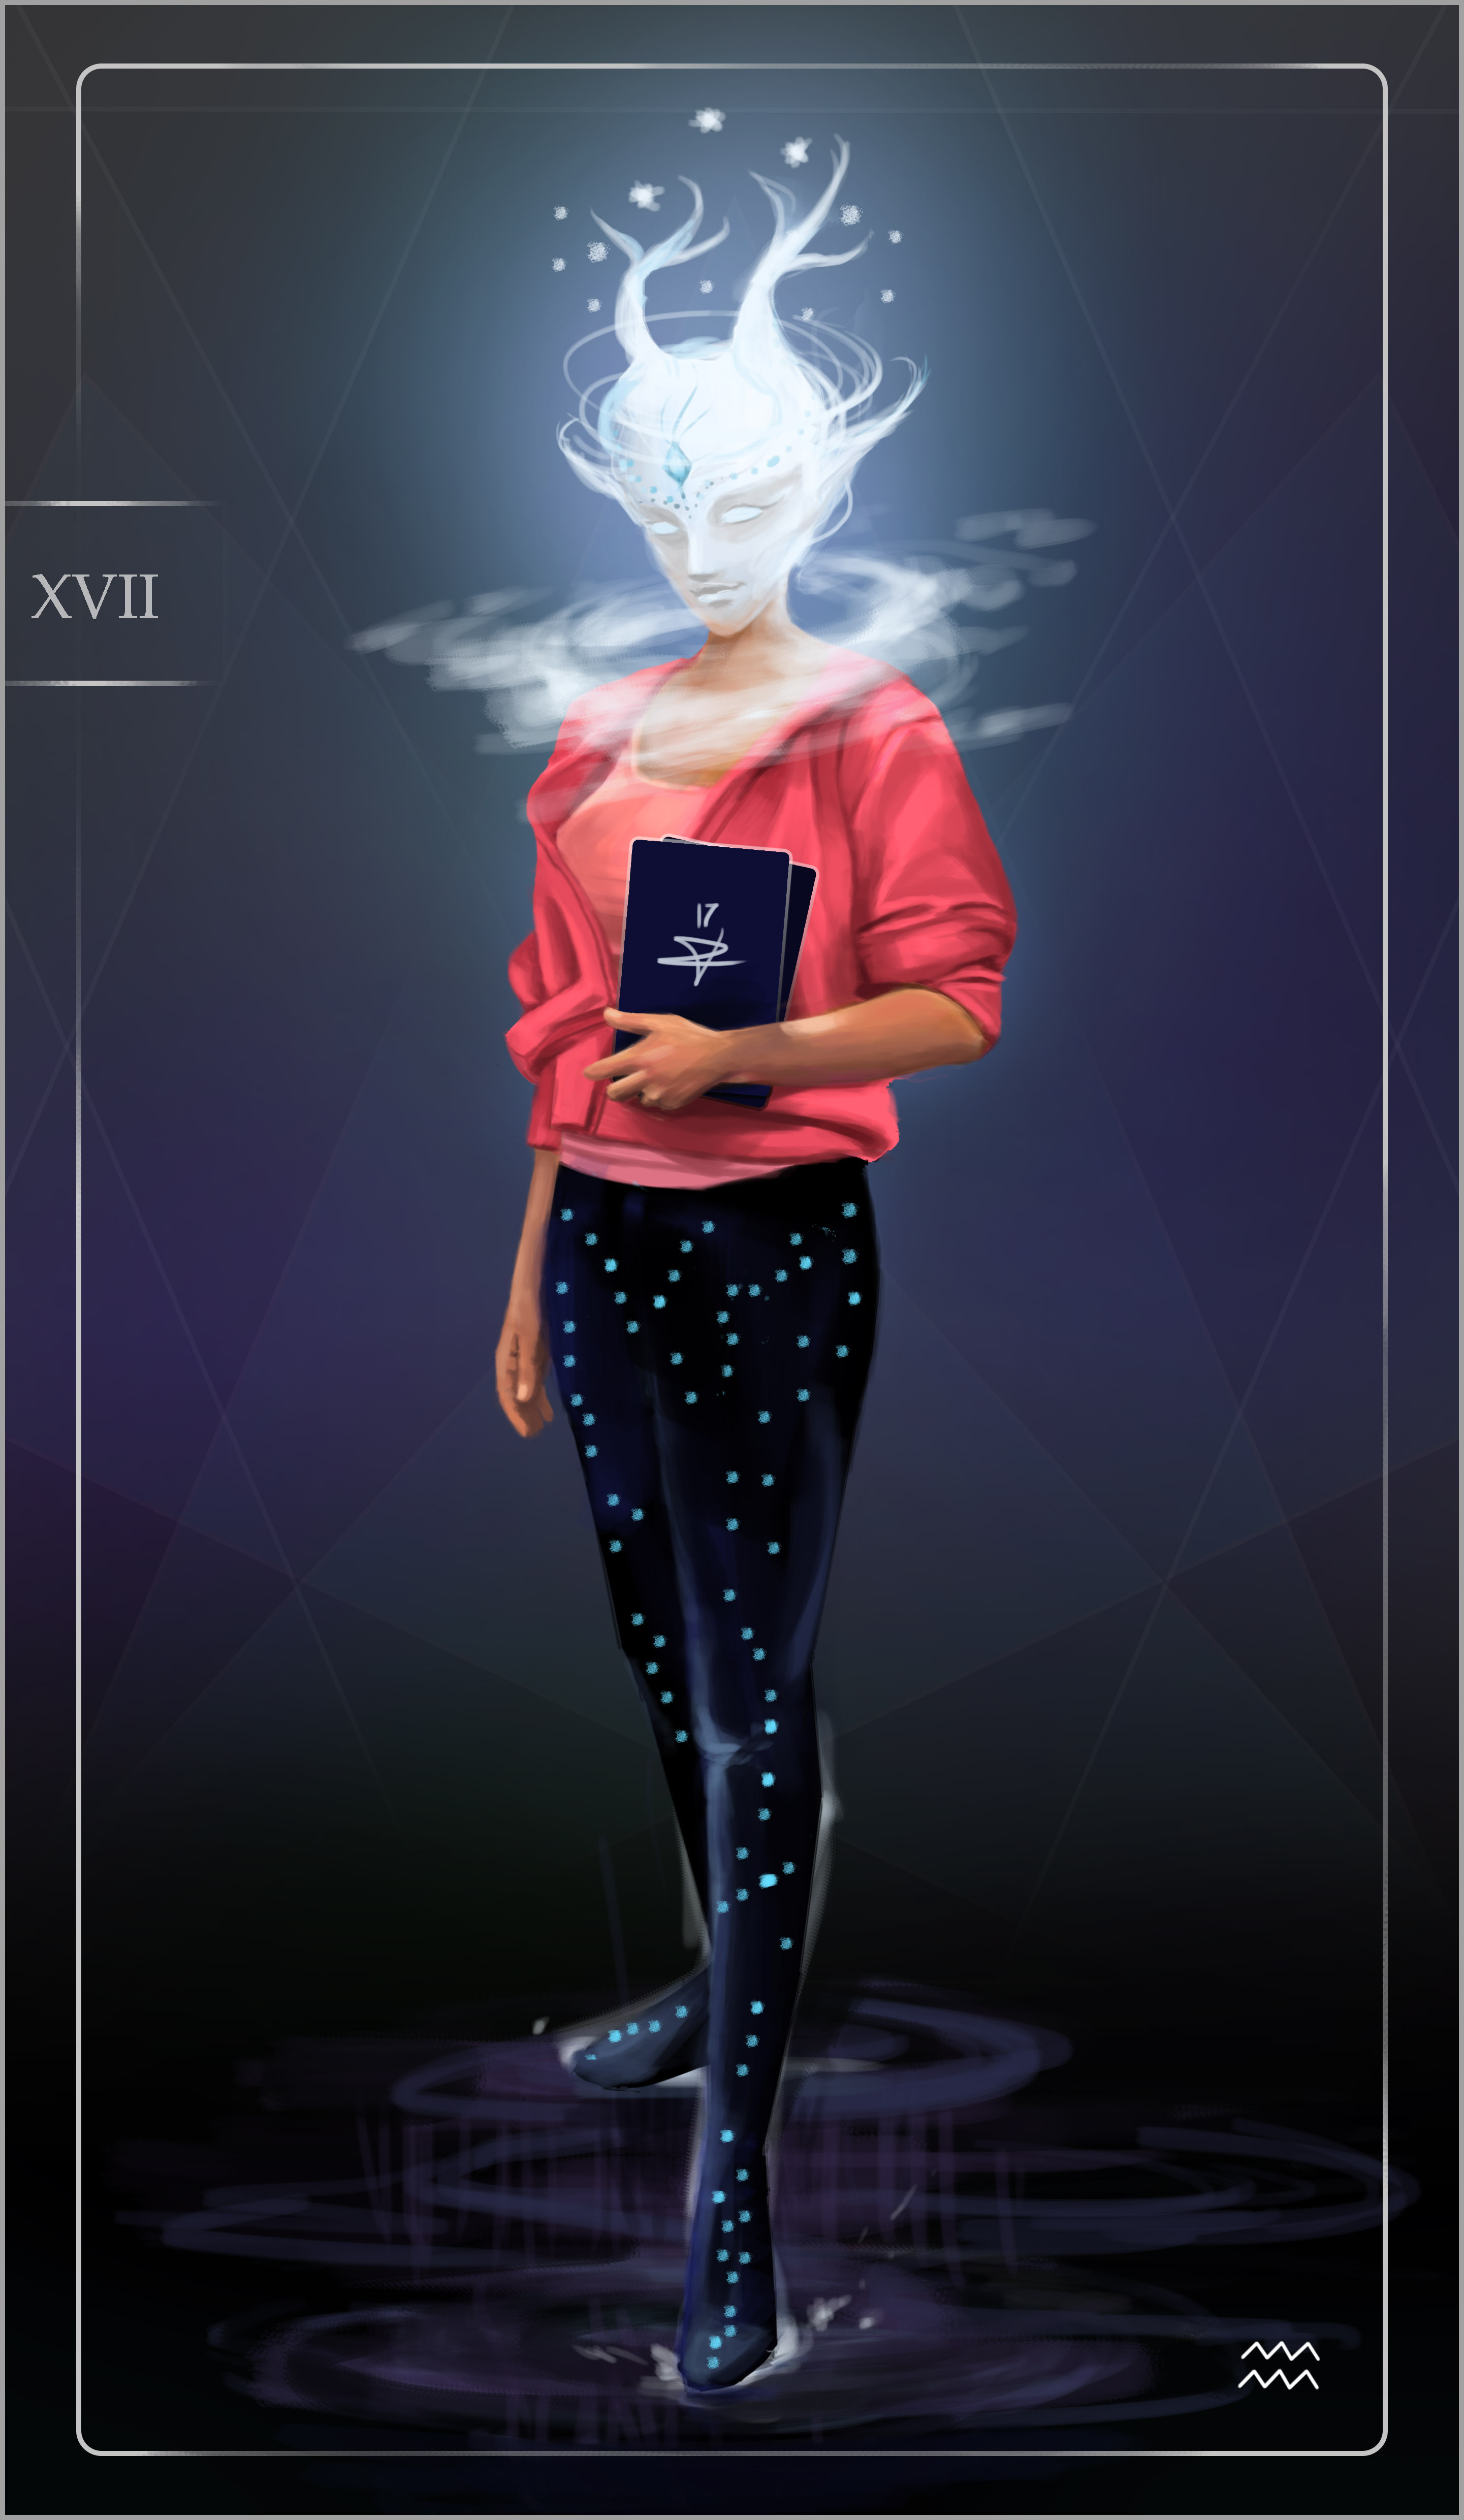 XVII - The Star 